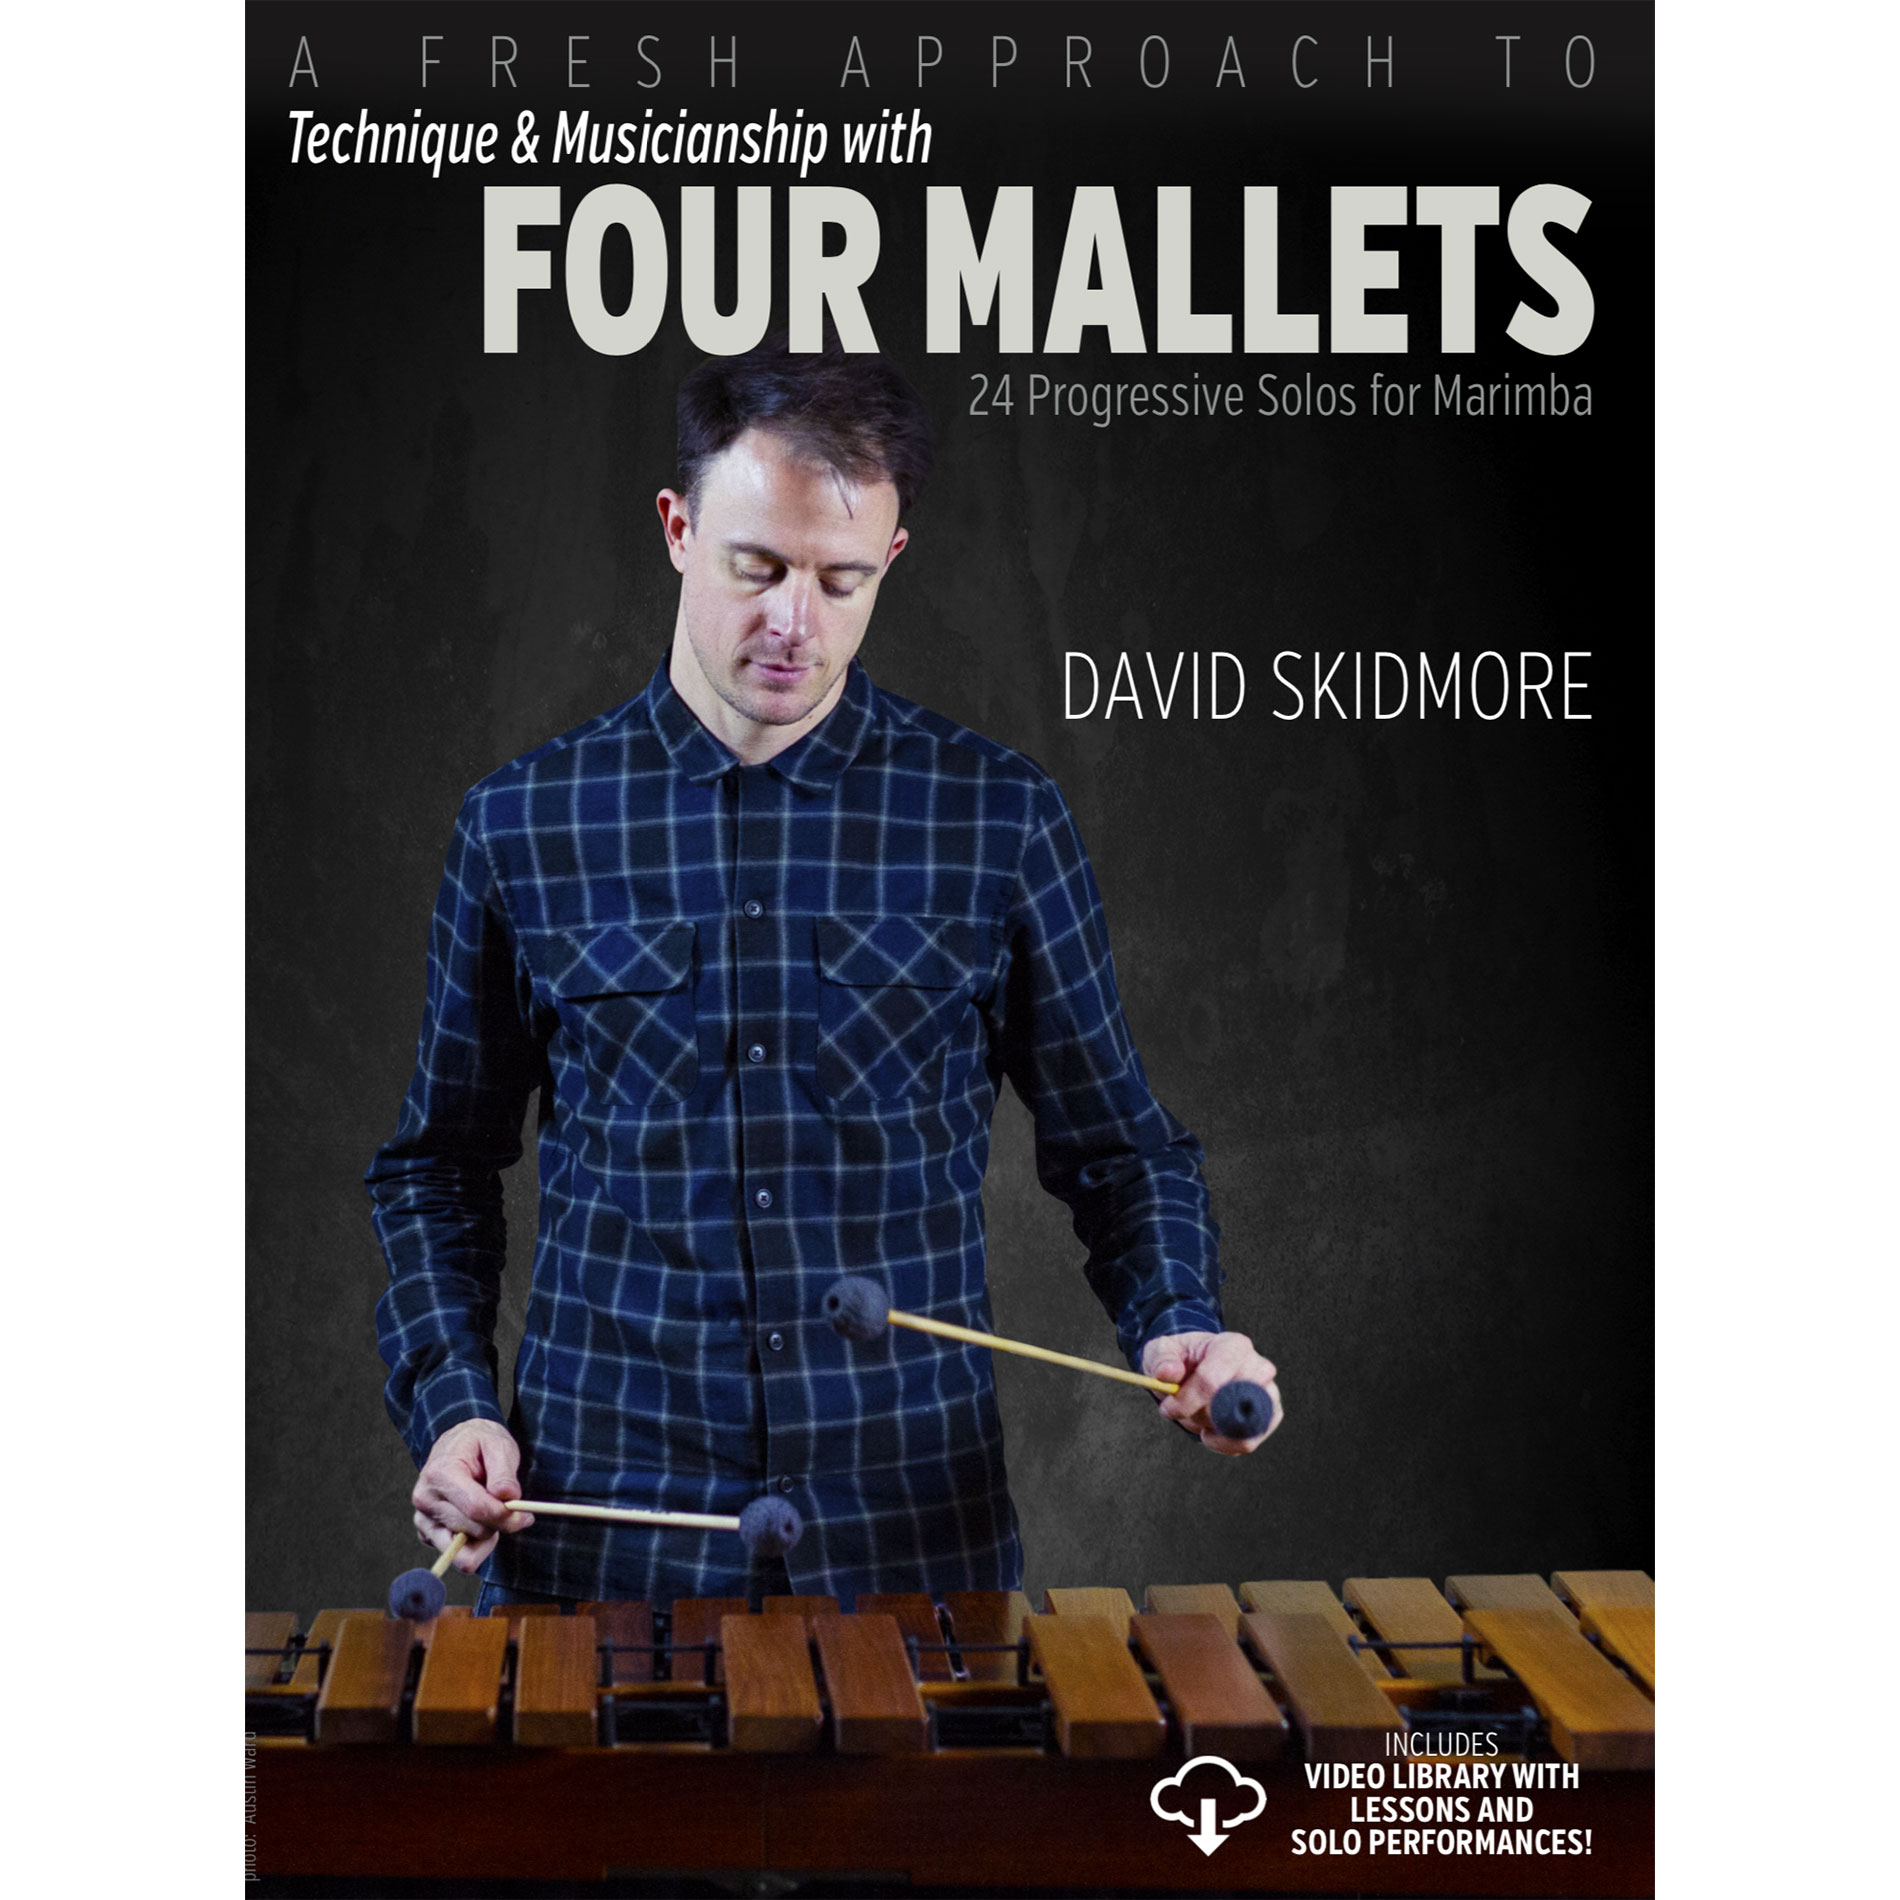 A Fresh Approach to Technique & Musicianship with Four Mallets by David Skidmore